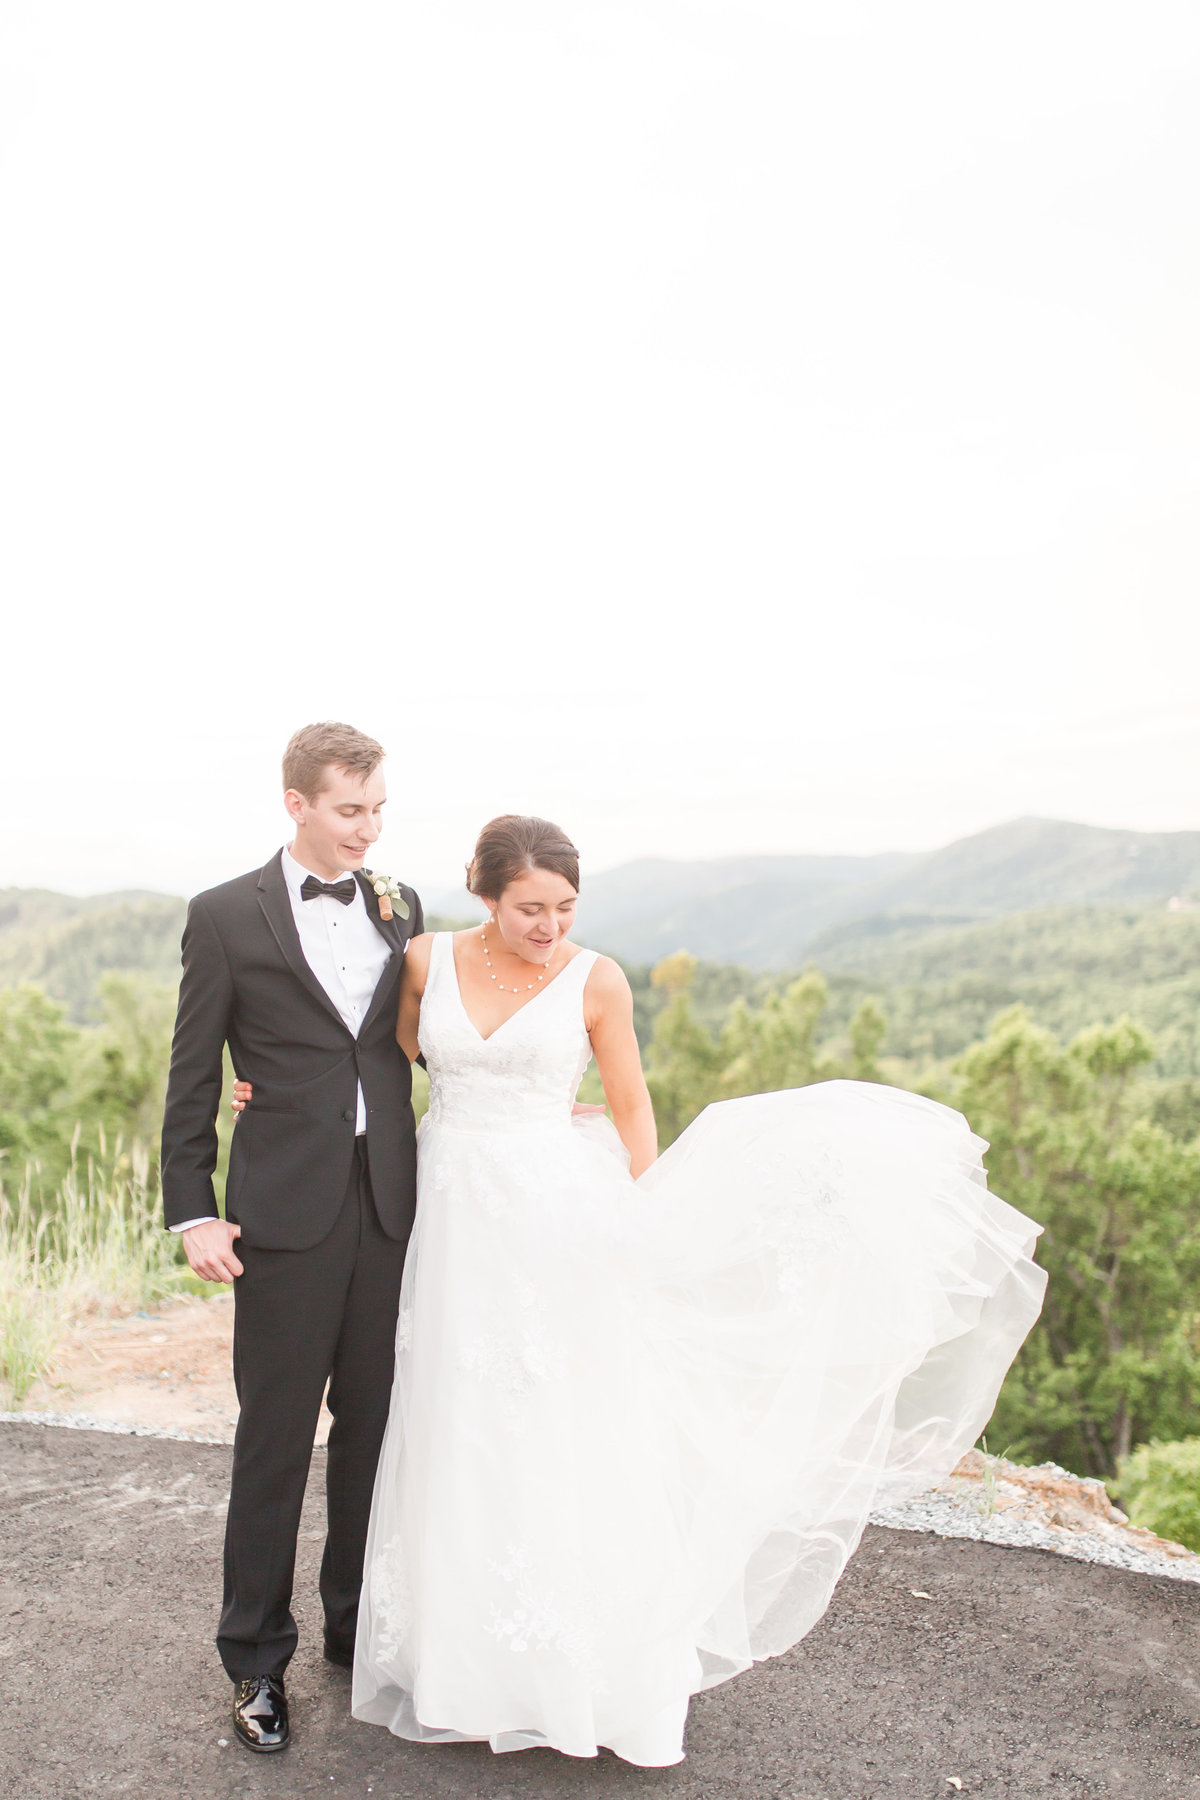 HYP_Kristina_and_Benedikt_Wedding_0088